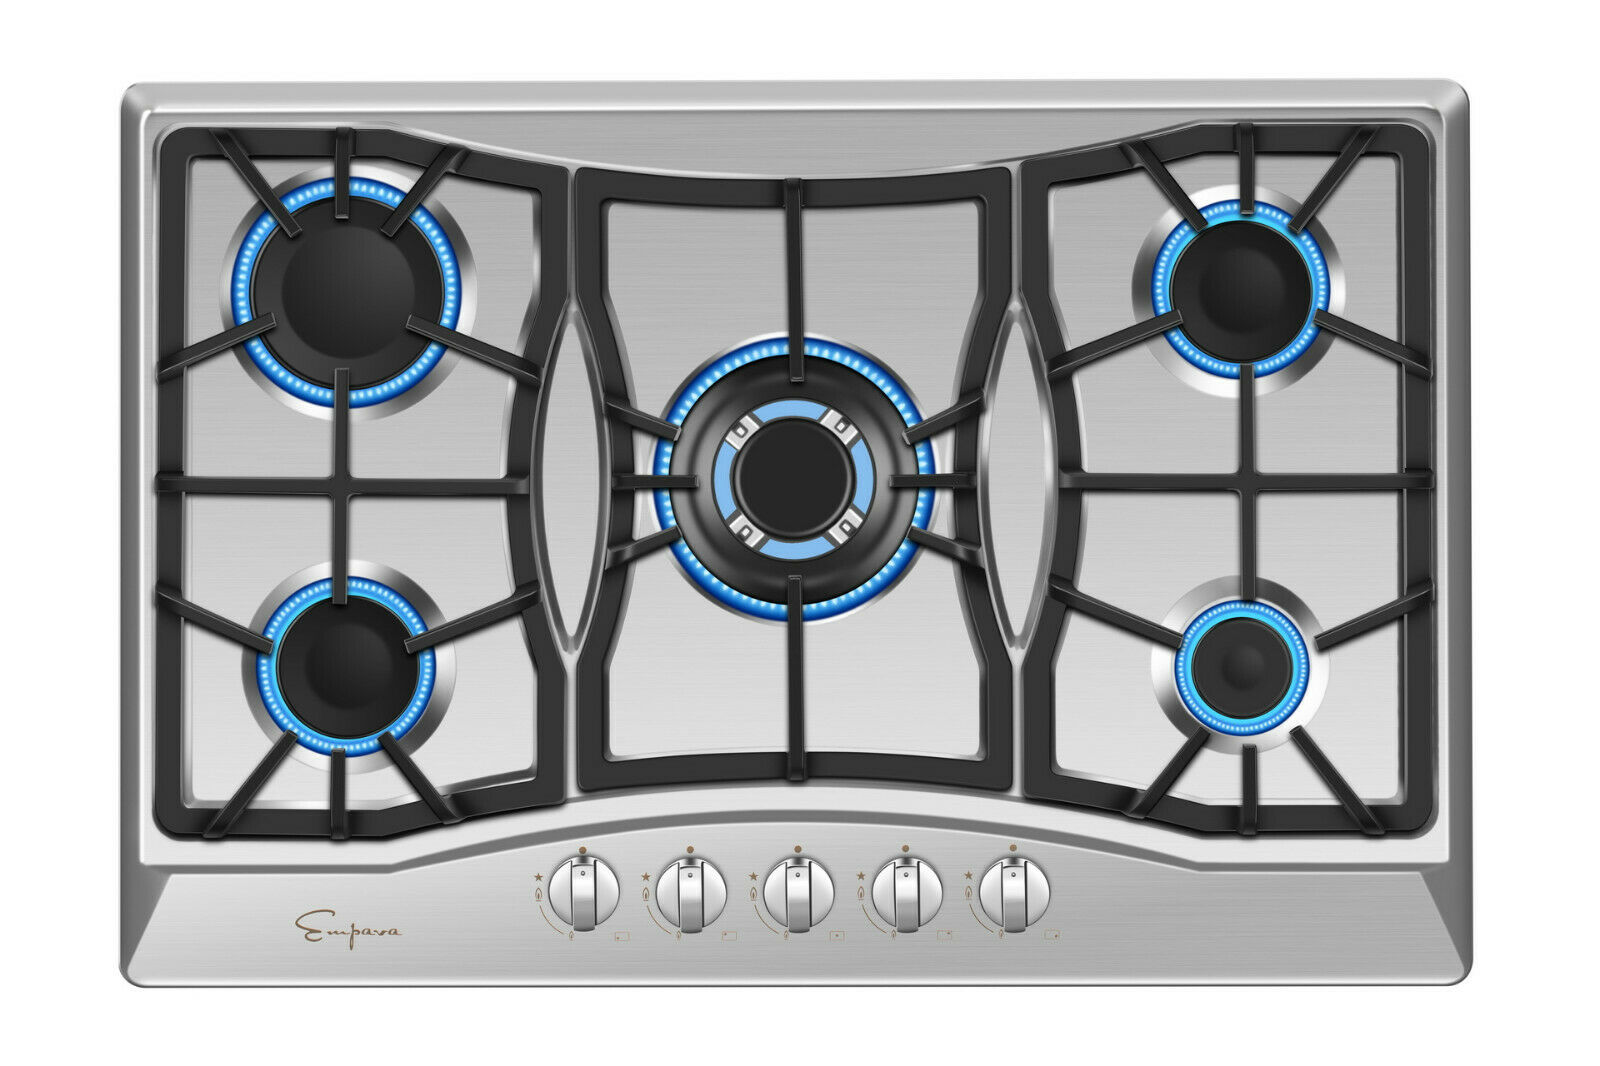 Empava 30 inch Gas Stove Cooktop 5 Italy Sabaf Burners Stain